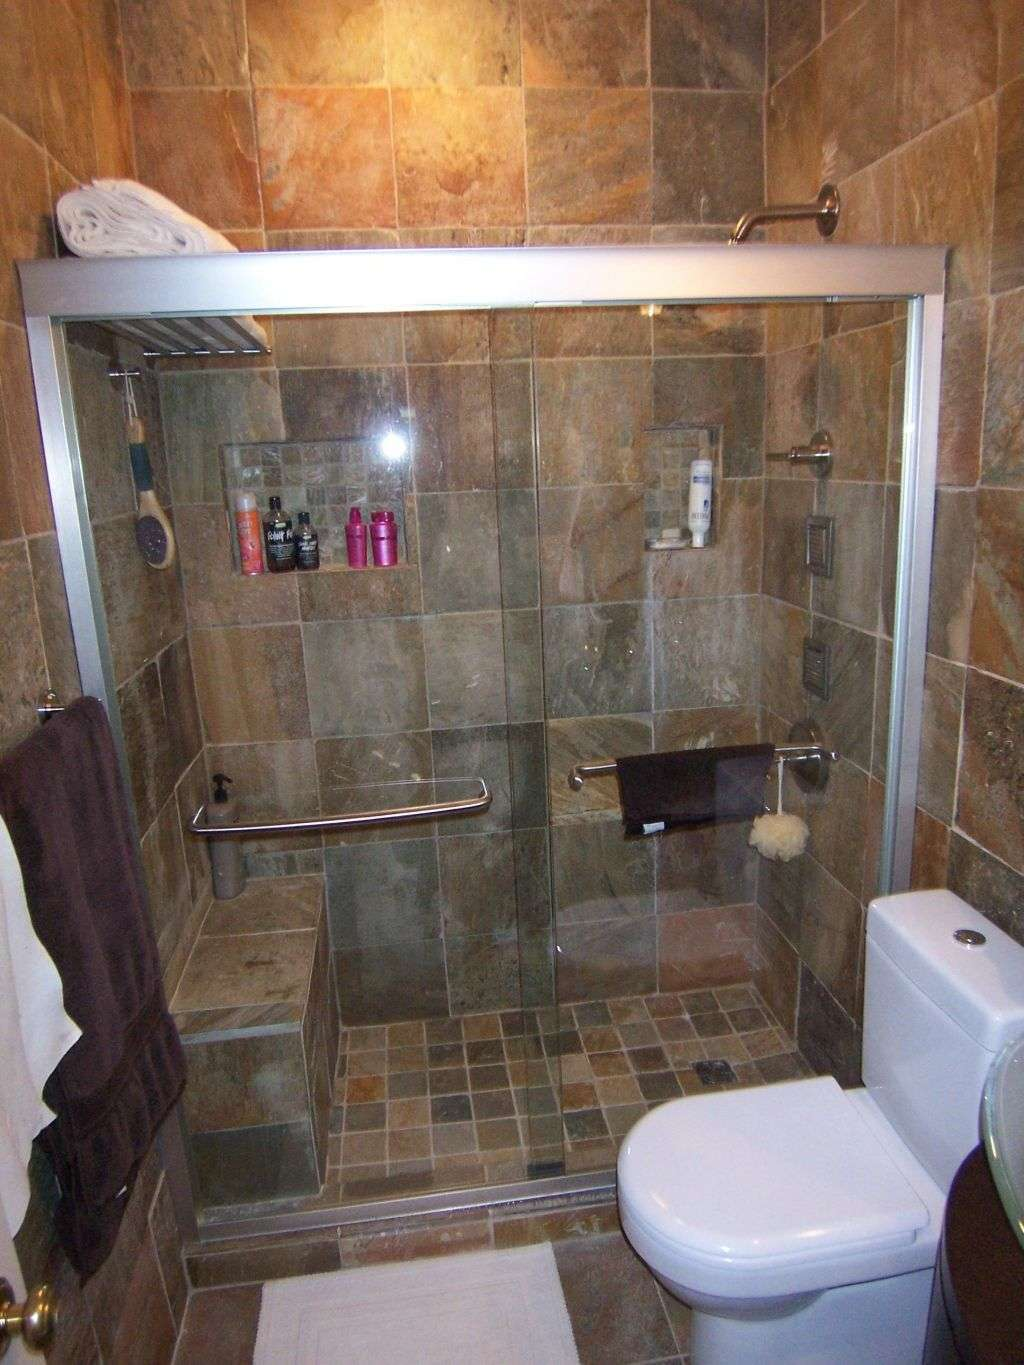 40 wonderful pictures and ideas of 1920s bathroom tile designs Bathroom remodel ideas with stand up shower